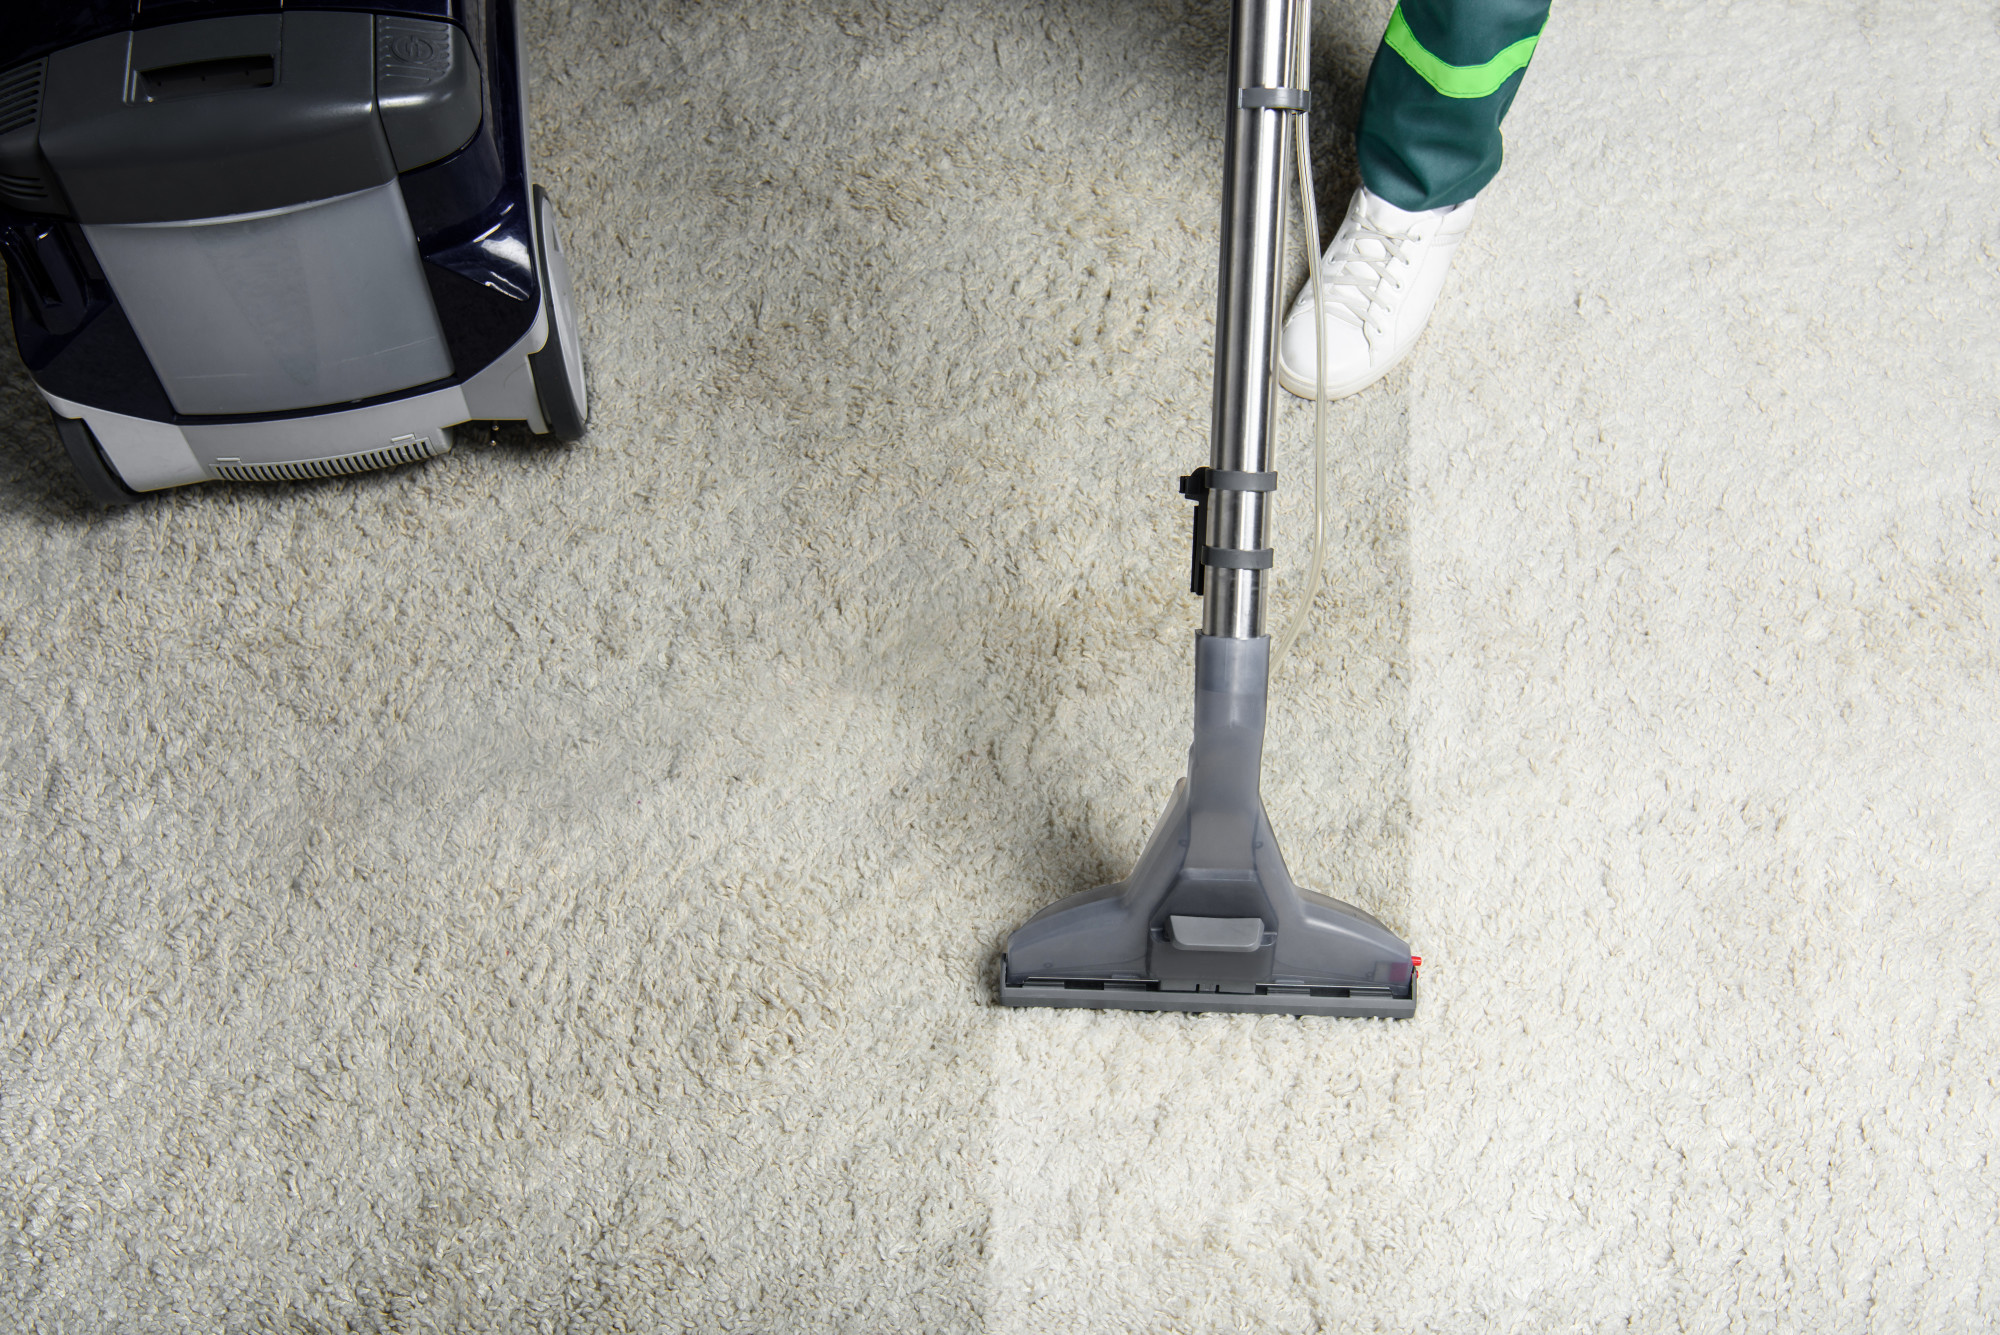 How to deep green clean carpets